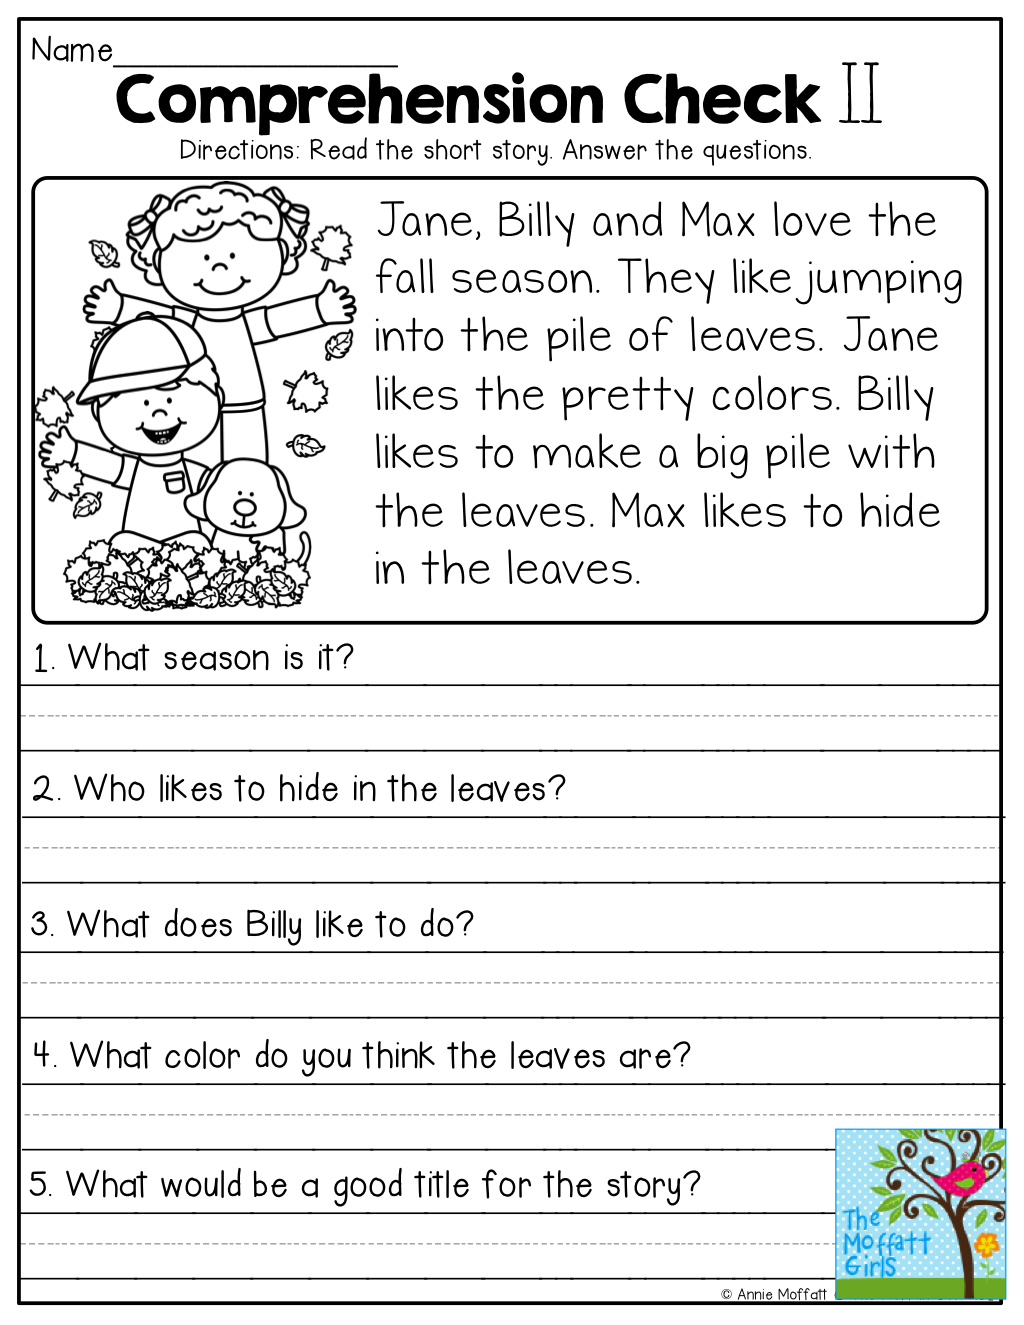 worksheet Reading Comprehension Worksheet 2nd Grade comprehension checks and so many more useful printables best of read the simple story answer questions tons great to help with grade level skills